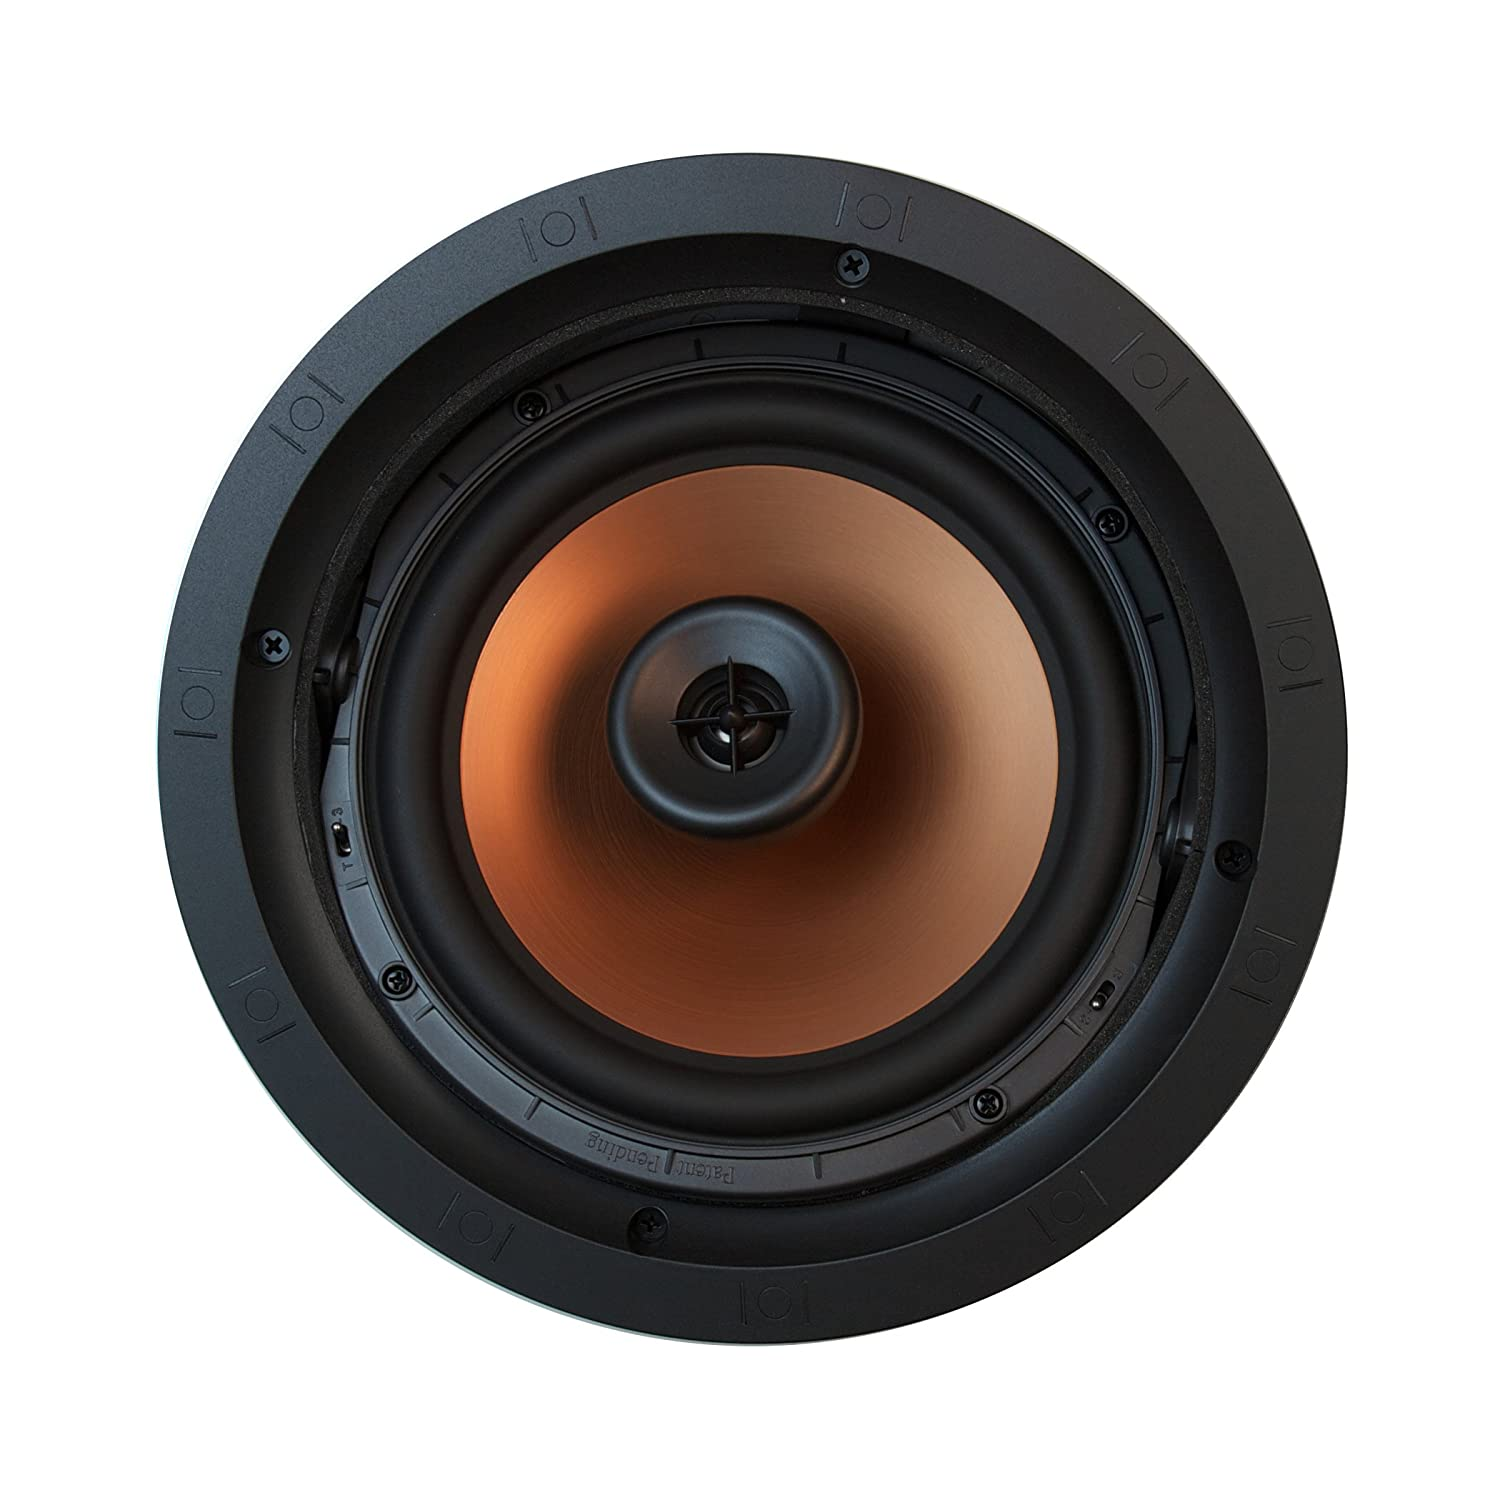 Klipsch CDT-5800-C II In-Ceiling Speaker - White (Each)